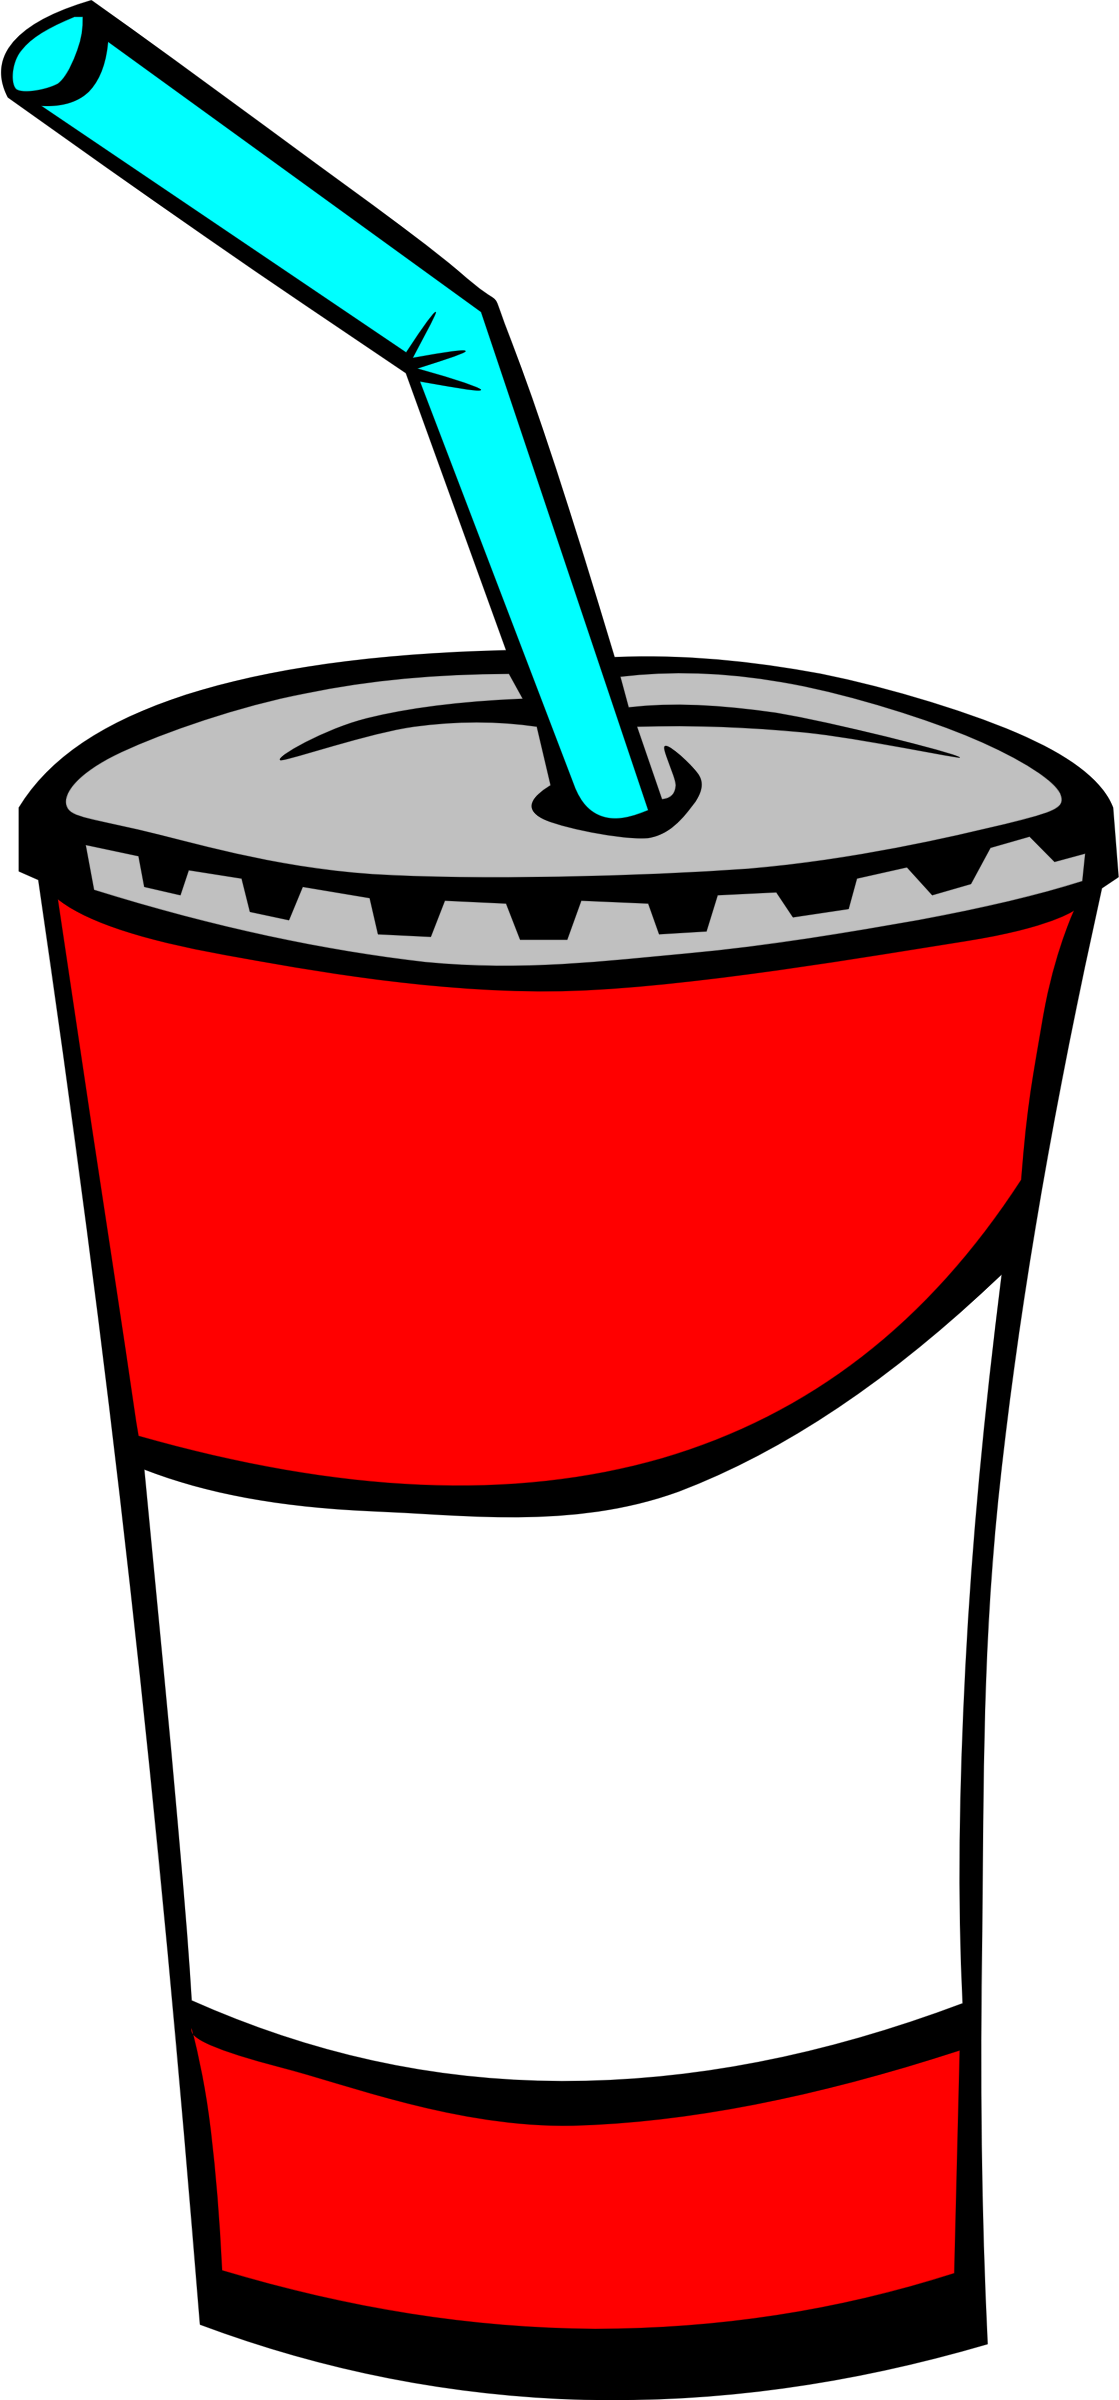 Foods clipart soda. Fast food drinks fountain